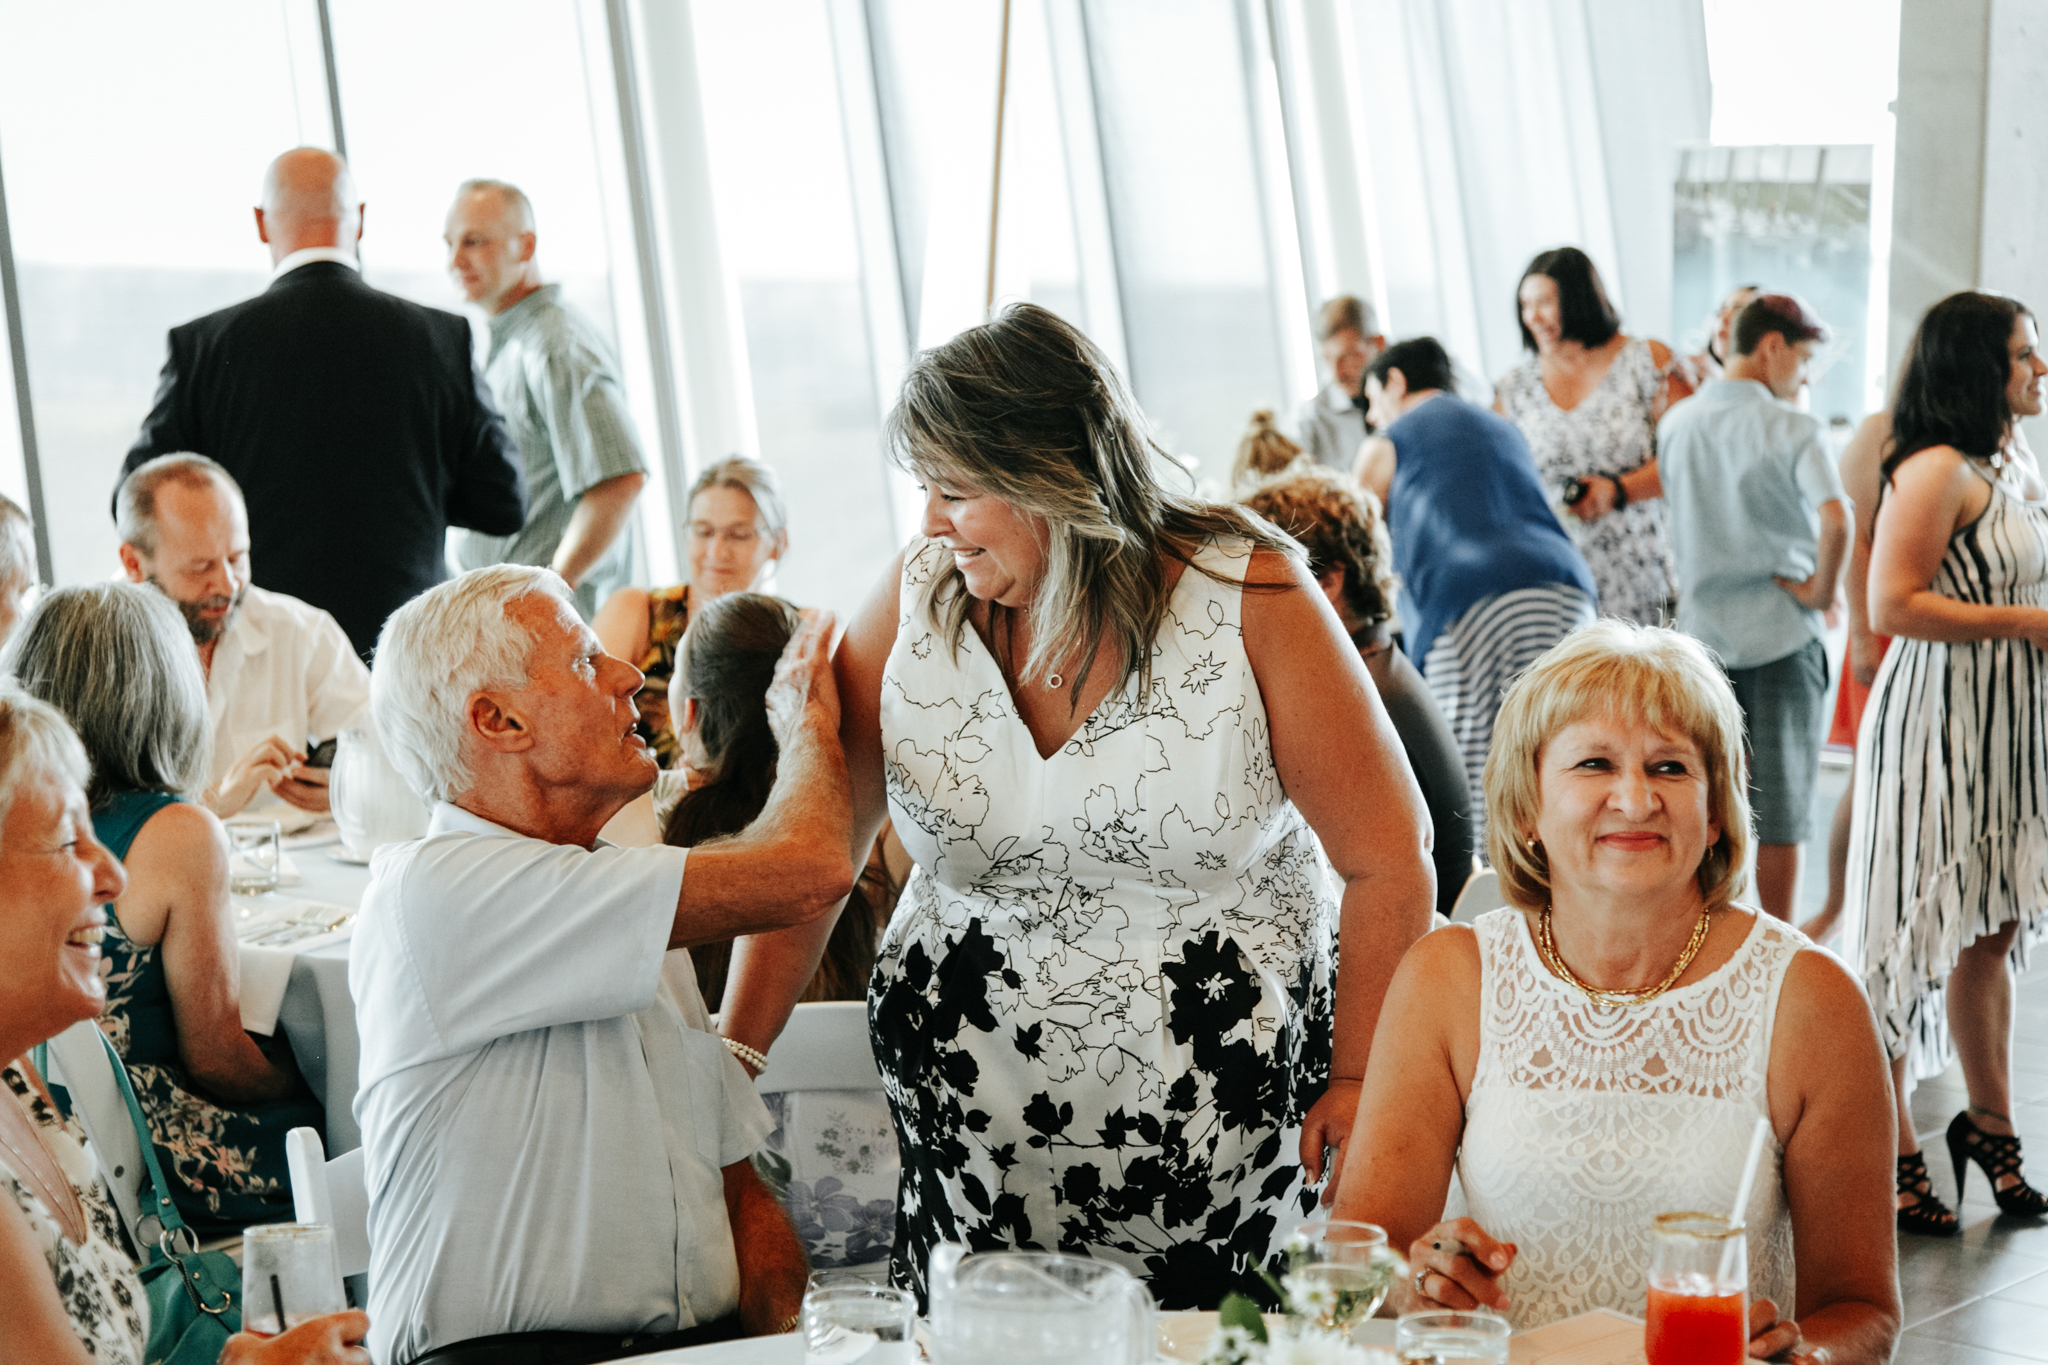 lethbridge-wedding-photographer-love-and-be-loved-photography-trent-danielle-galt-reception-picture-image-photo-172.jpg